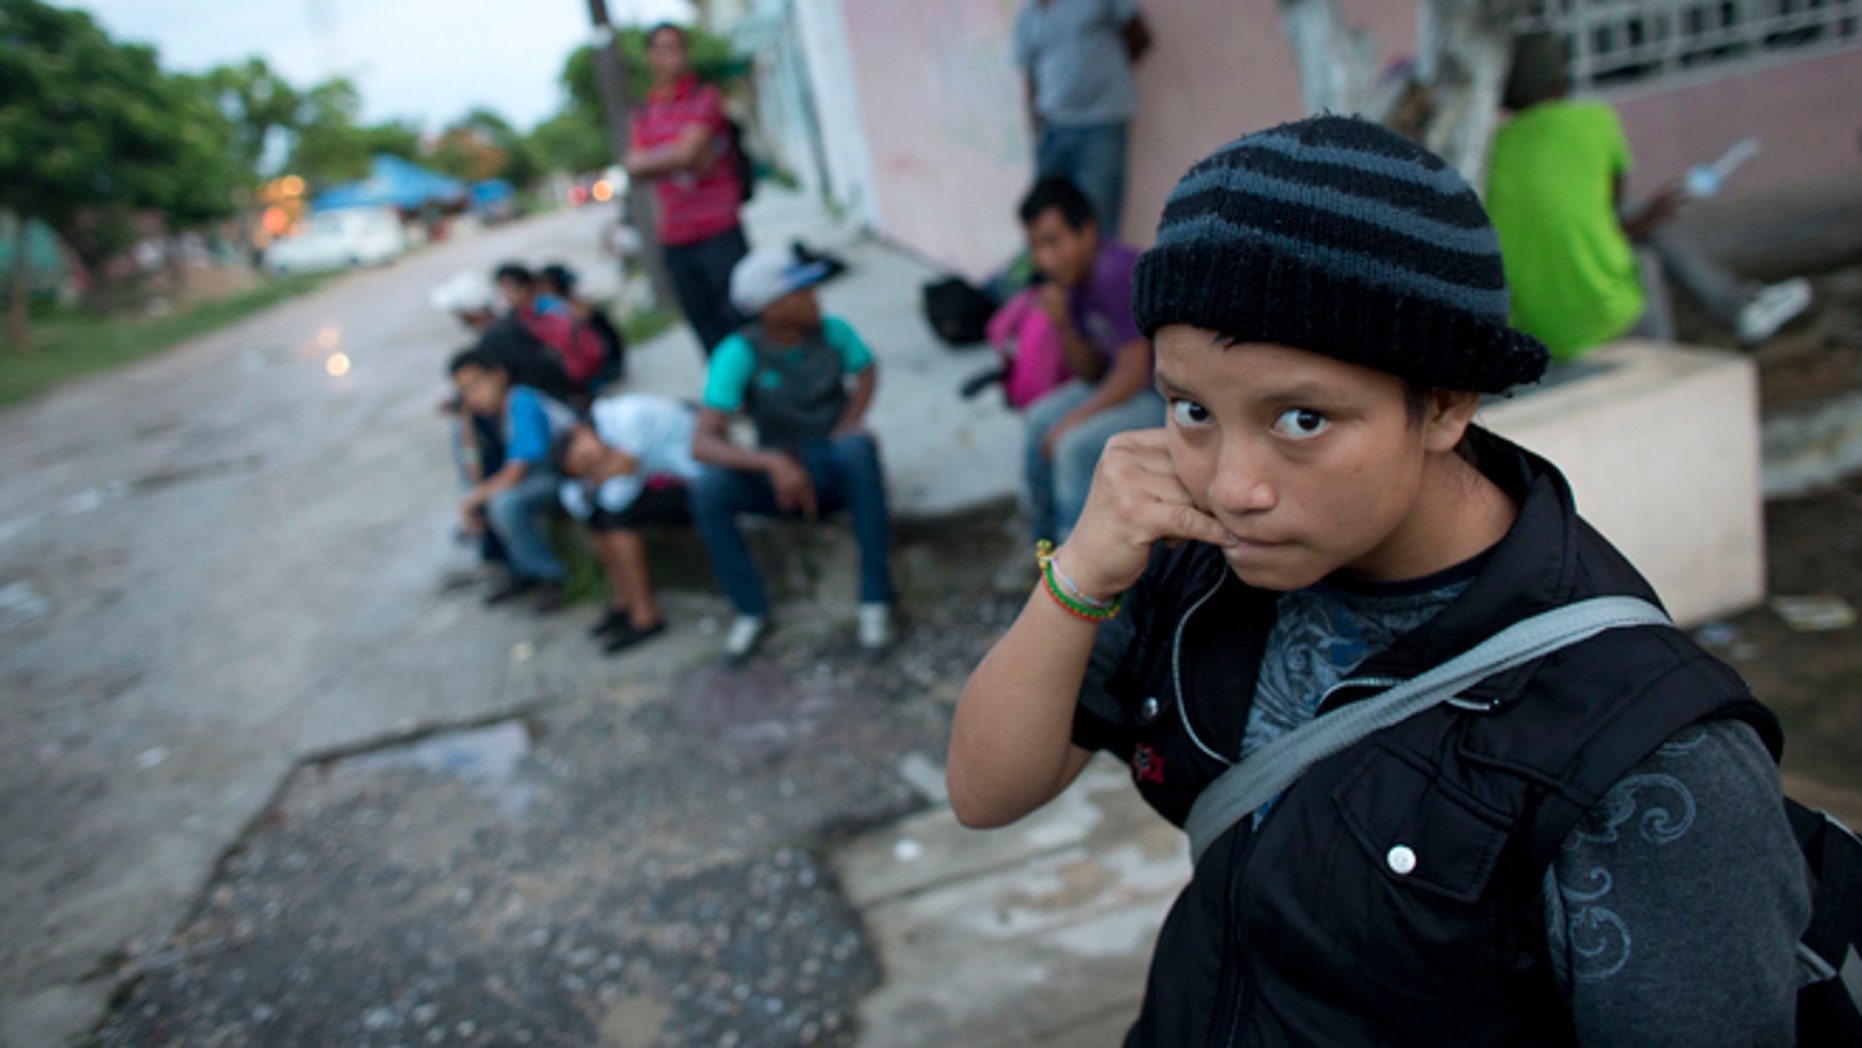 In this June 19, 2014 photo, a 14-year-old Guatemalan girl traveling alone waits for a northbound freight train along with other Central American migrants, in Arriaga, Chiapas state, Mexico. The United States has seen a dramatic increase in the number of Central American migrants crossing into its territory, particularly children traveling without any adult guardian. More than 52,000 unaccompanied children have been apprehended since October. (AP Photo/Rebecca Blackwell)